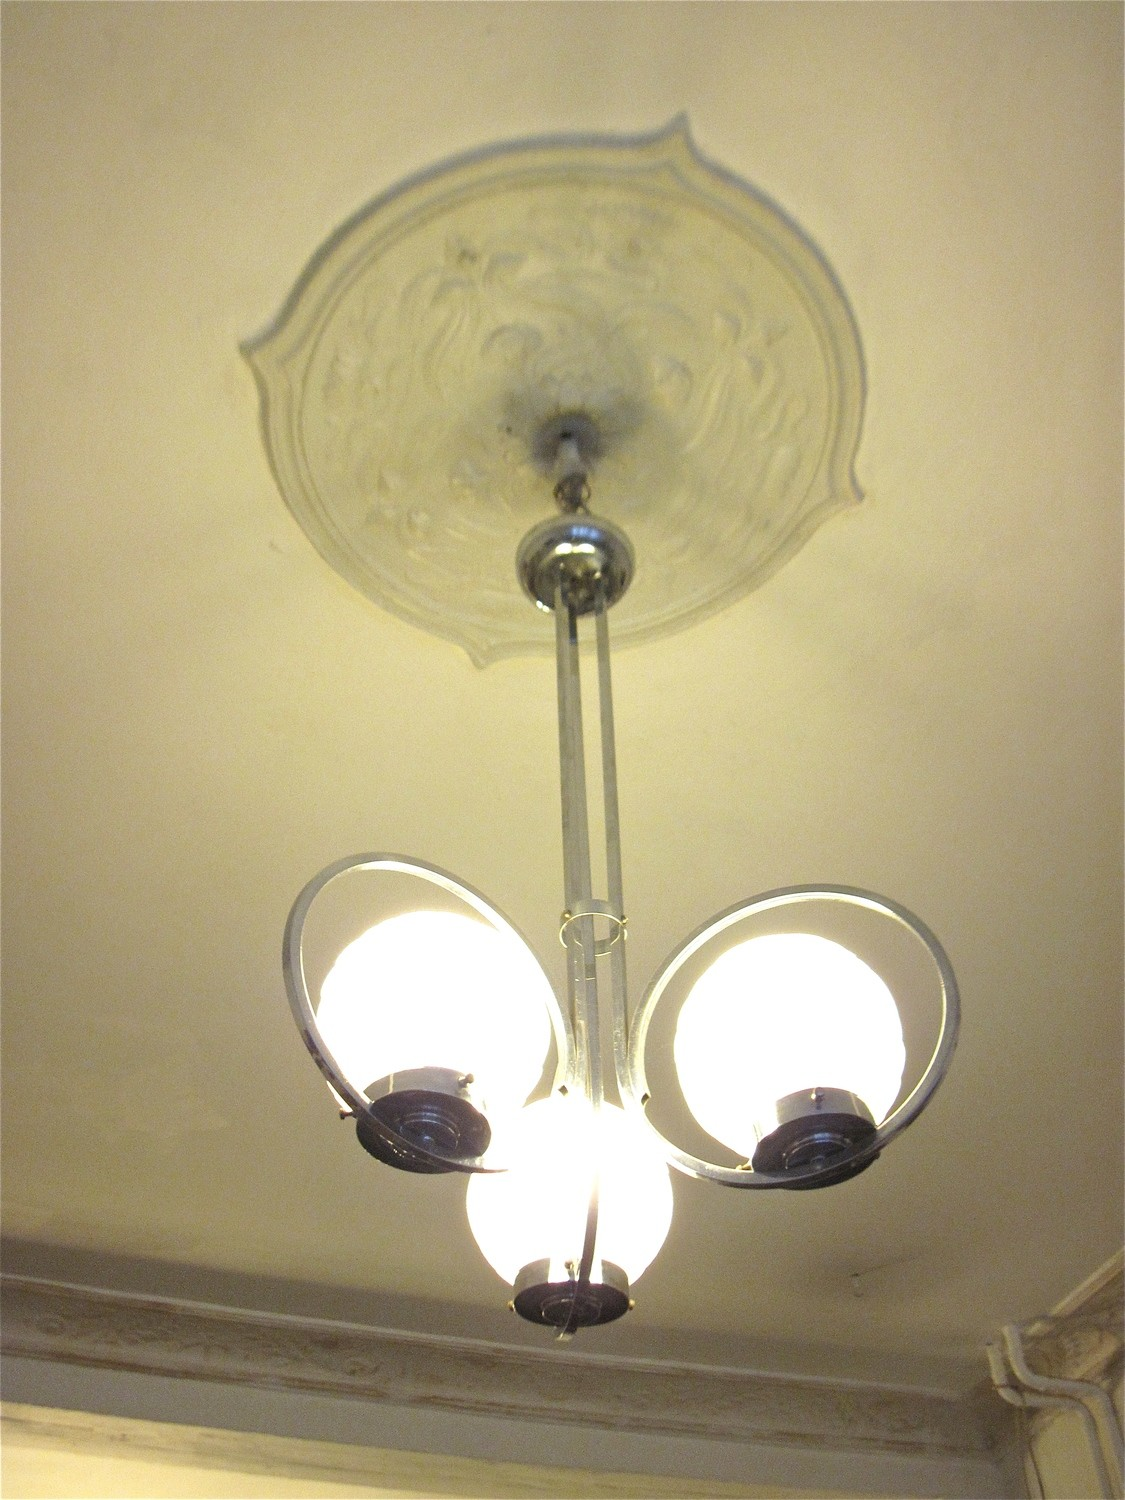 Deckenlampe Kugel Art Deco Chrom Deckenlampe Mit 3 Glas Kugeln Um 1930 Ceiling Lamp With 3 Glass Globes